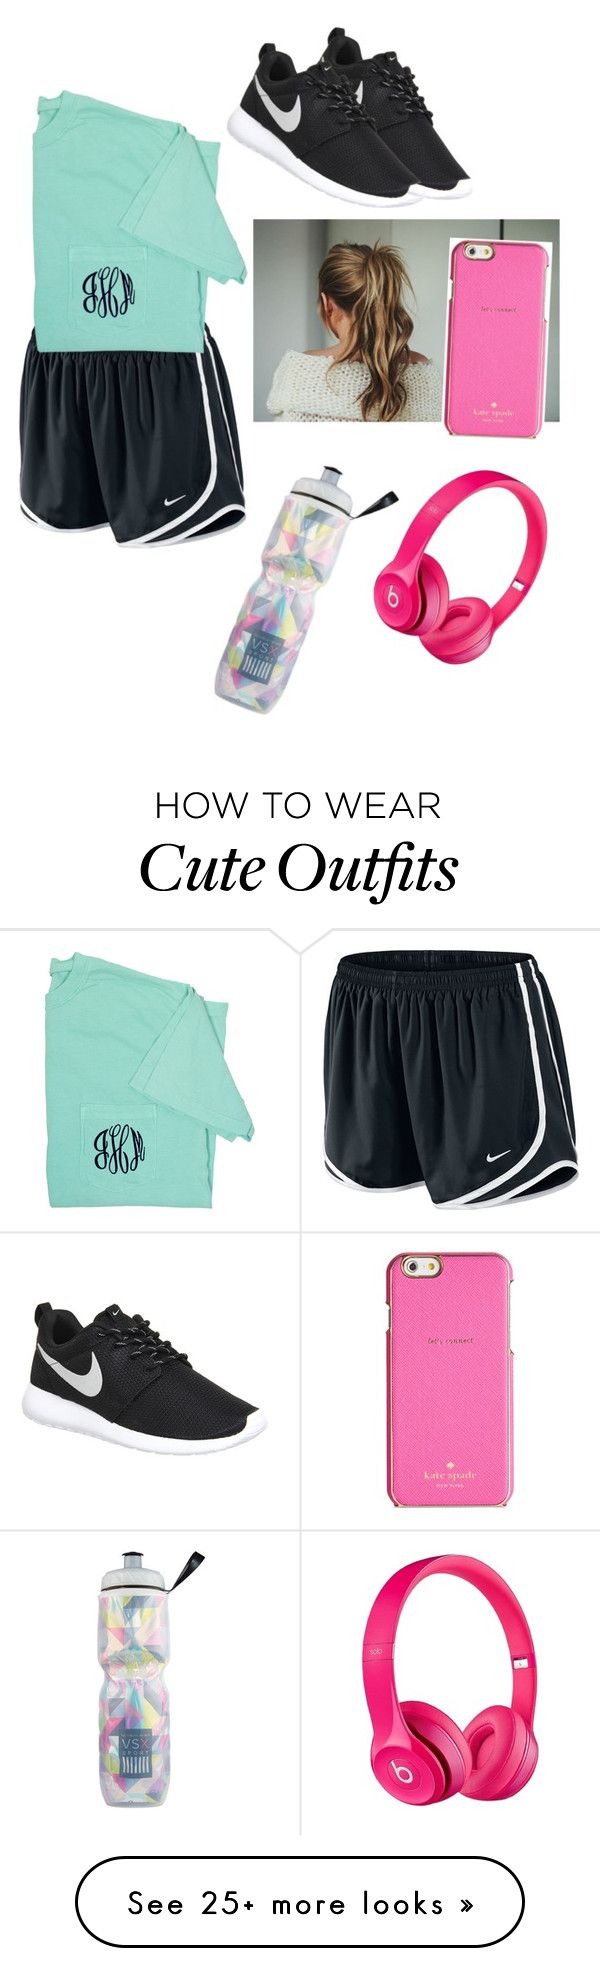 """Workout outfit"" by daylinrose on Polyvore featuring NIKE, Kate Spade, Victoria's Secret, Apple, women's clothing, women, female, woman, misses and juniors"